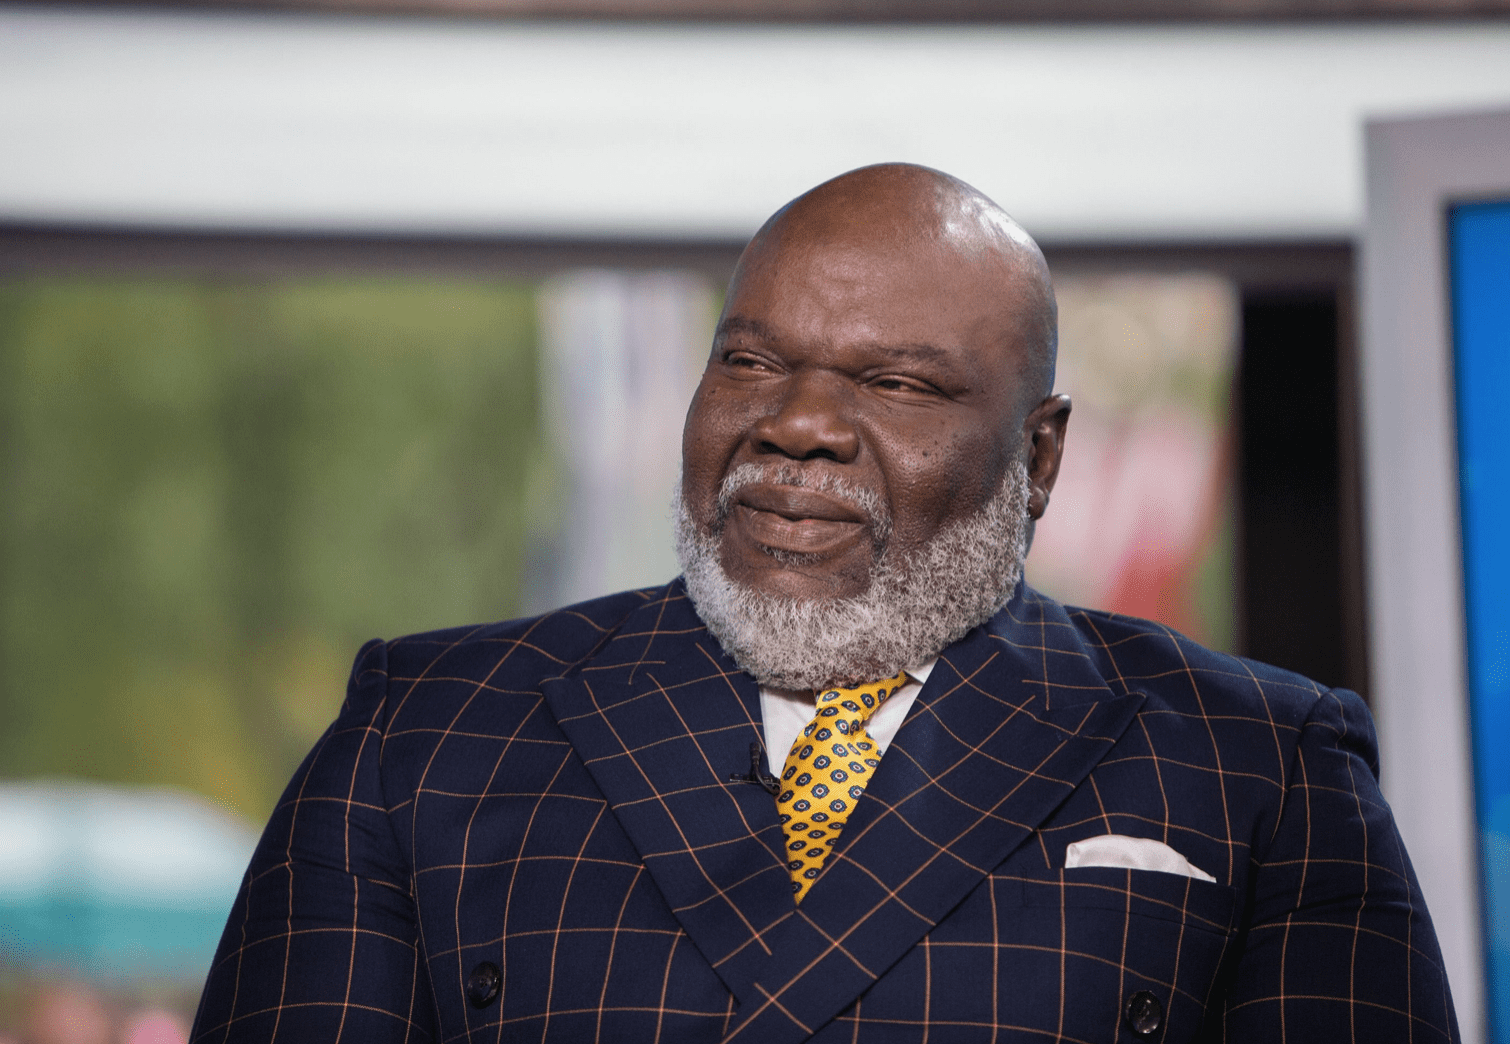 Bishop T.D. Jakes during a television interview on October 9, 2017. | Source: Getty Images